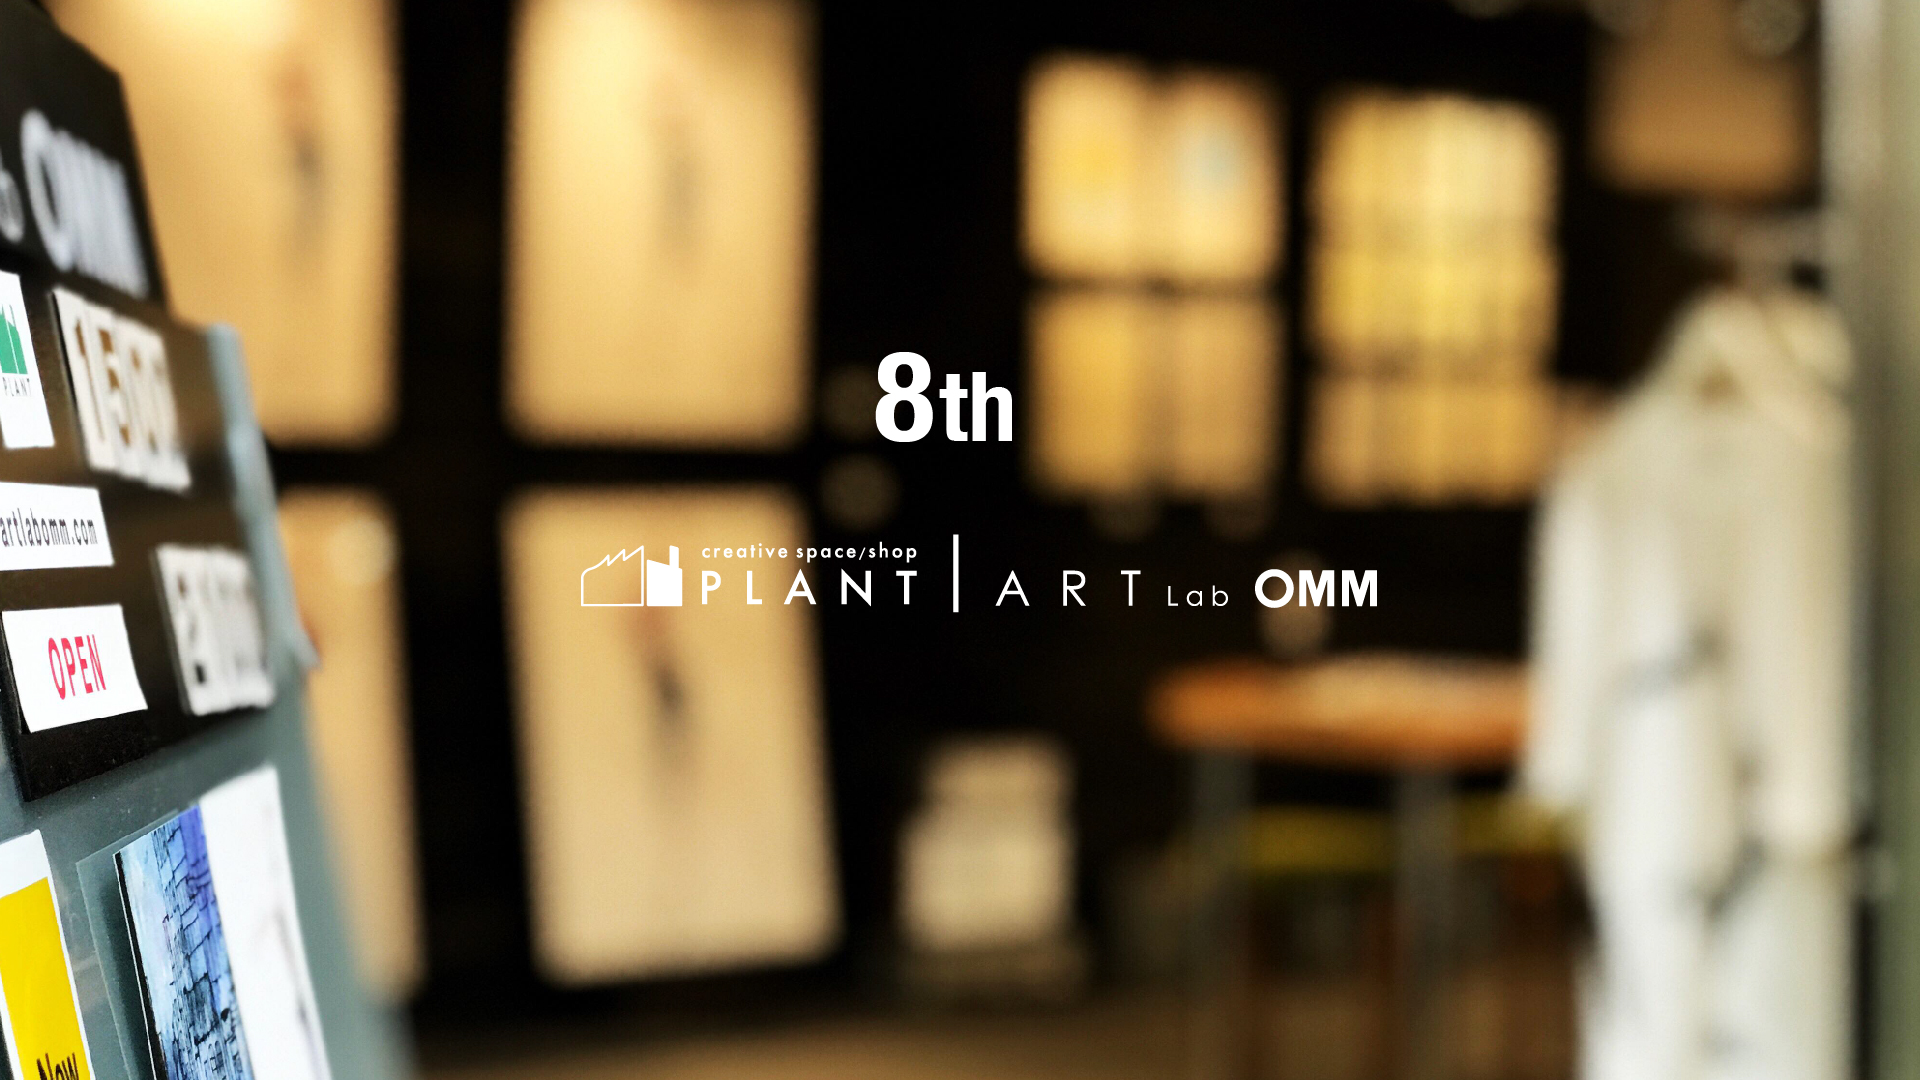 ART Lab OMM/PLANT